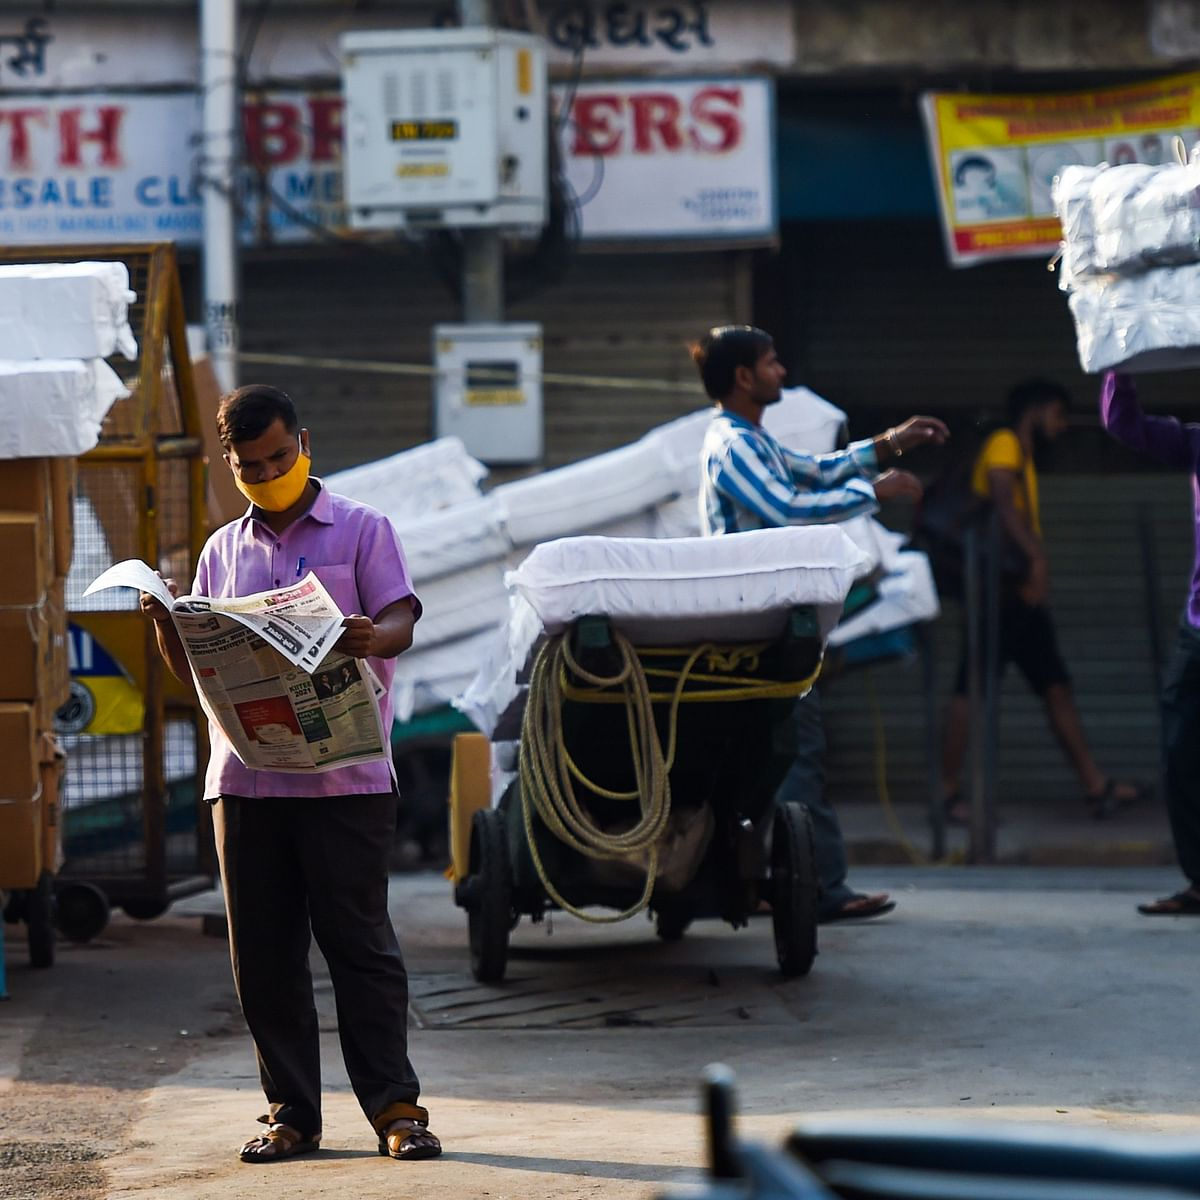 Traders displeased by extension of COVID-19 curbs; urge Maharashtra govt to take 'sympathetic' look at their hardships